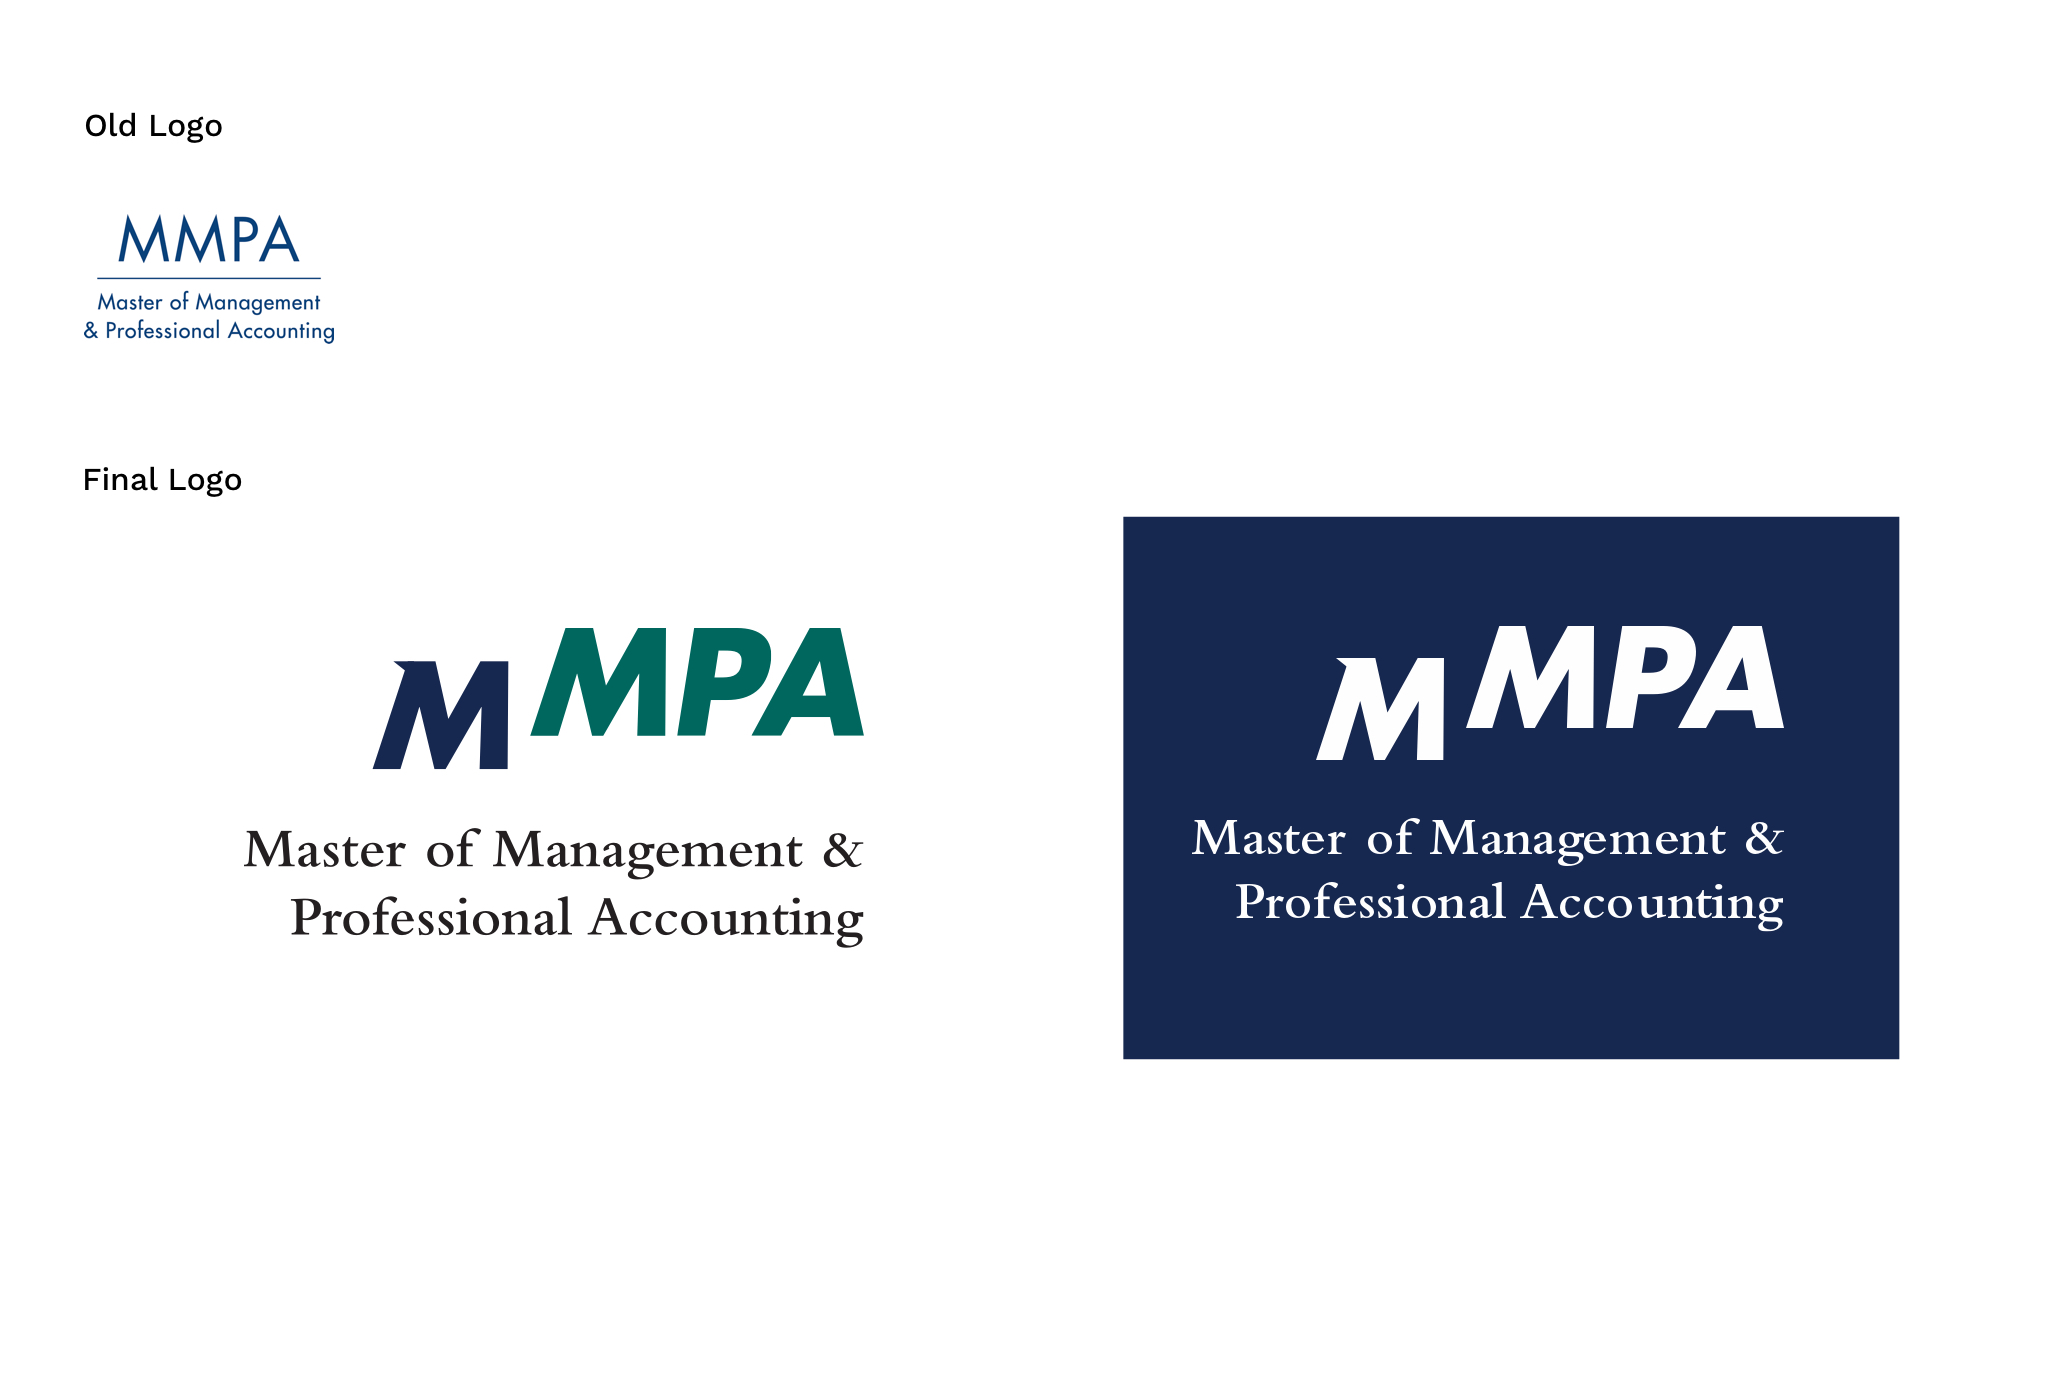 Photo of MMPA previous and final logo